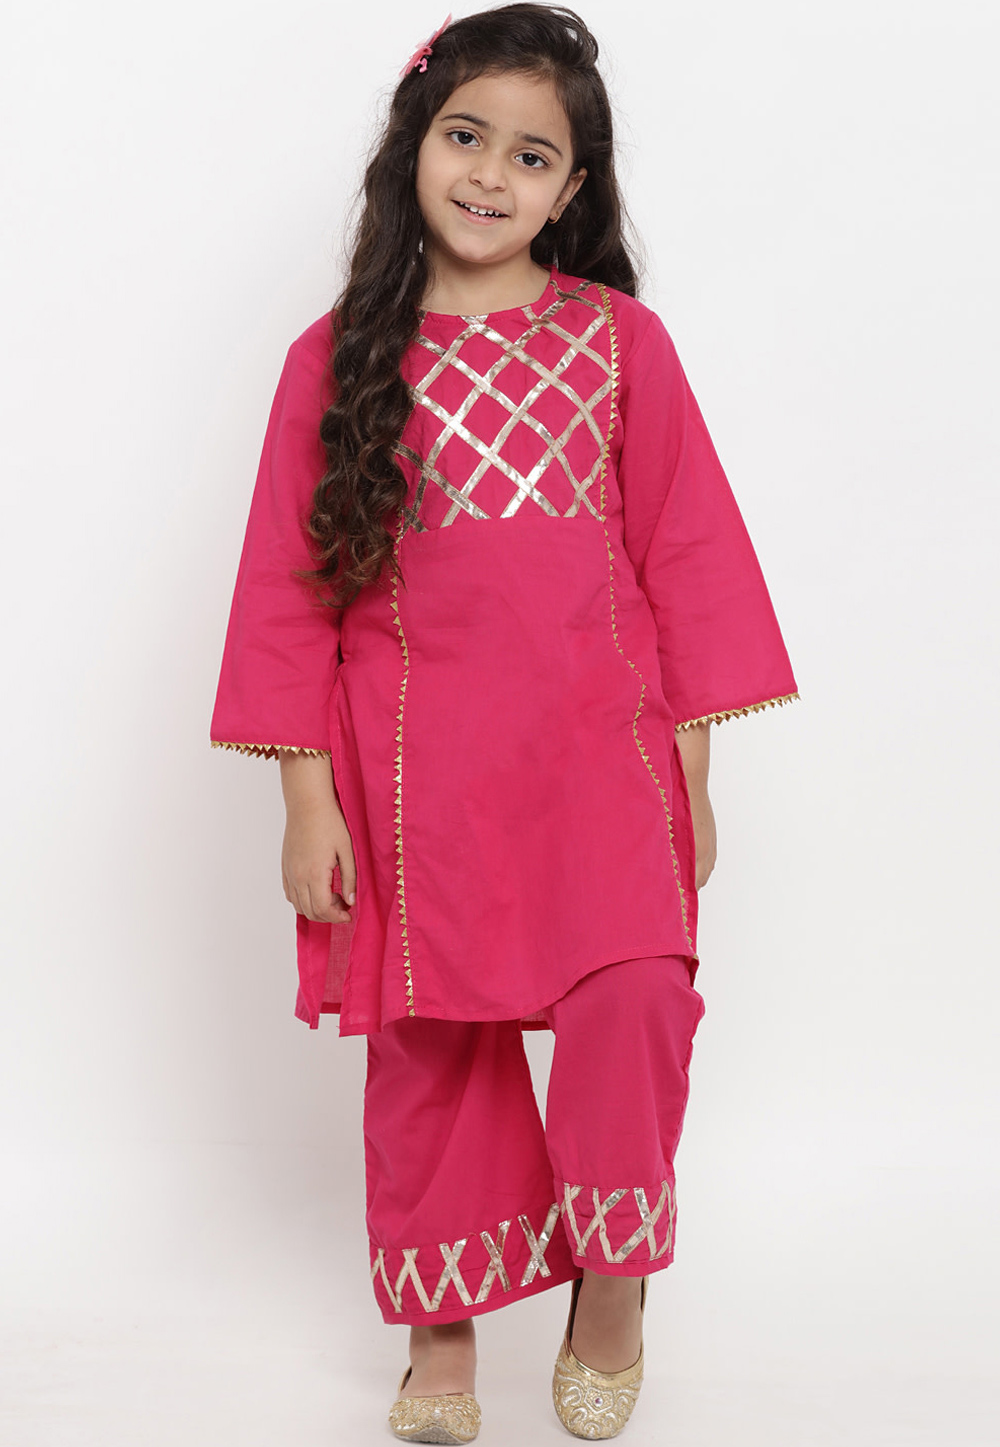 Pink Cotton Readymade Kids Palazzo Suit 202883